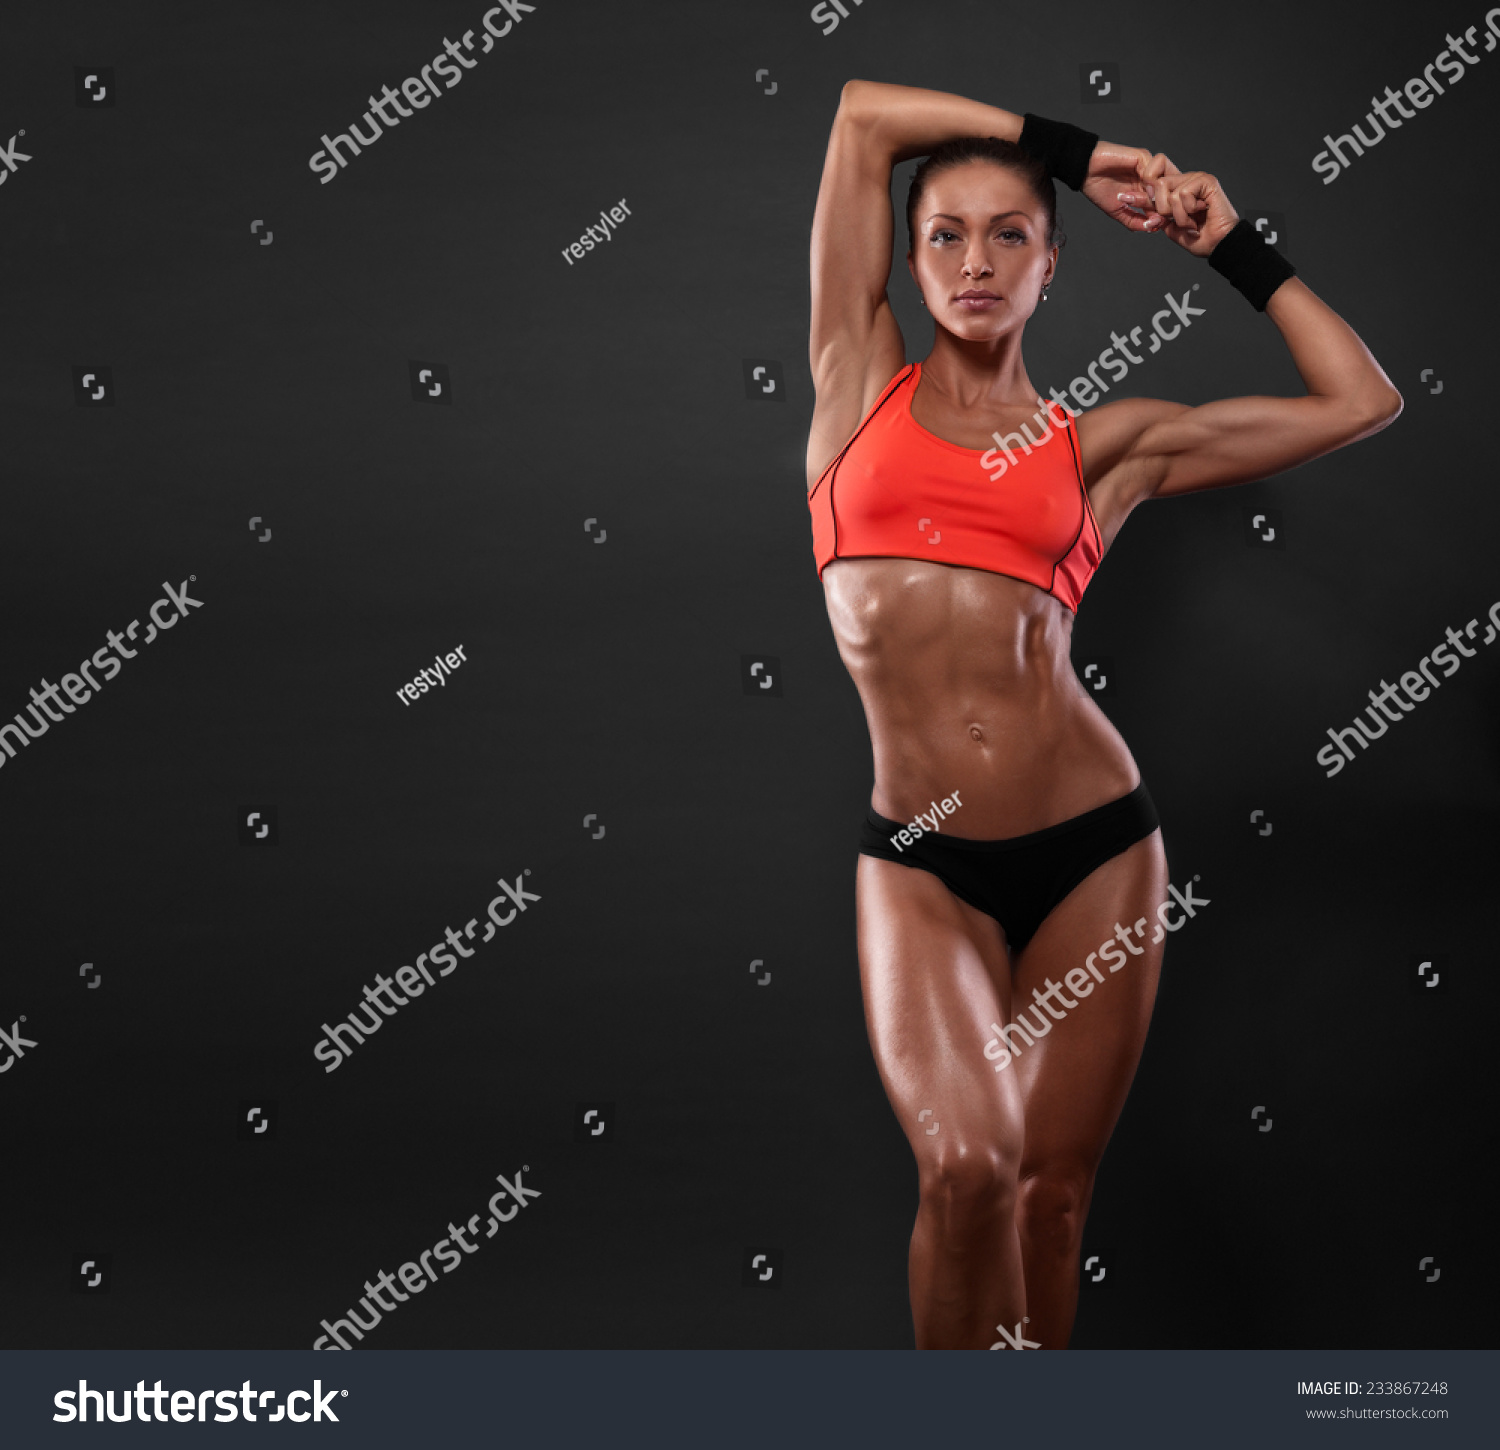 attractive fitness woman, trained female body, lifestyle portrait ...: www.shutterstock.com/pic-233867248/stock-photo-attractive-fitness...